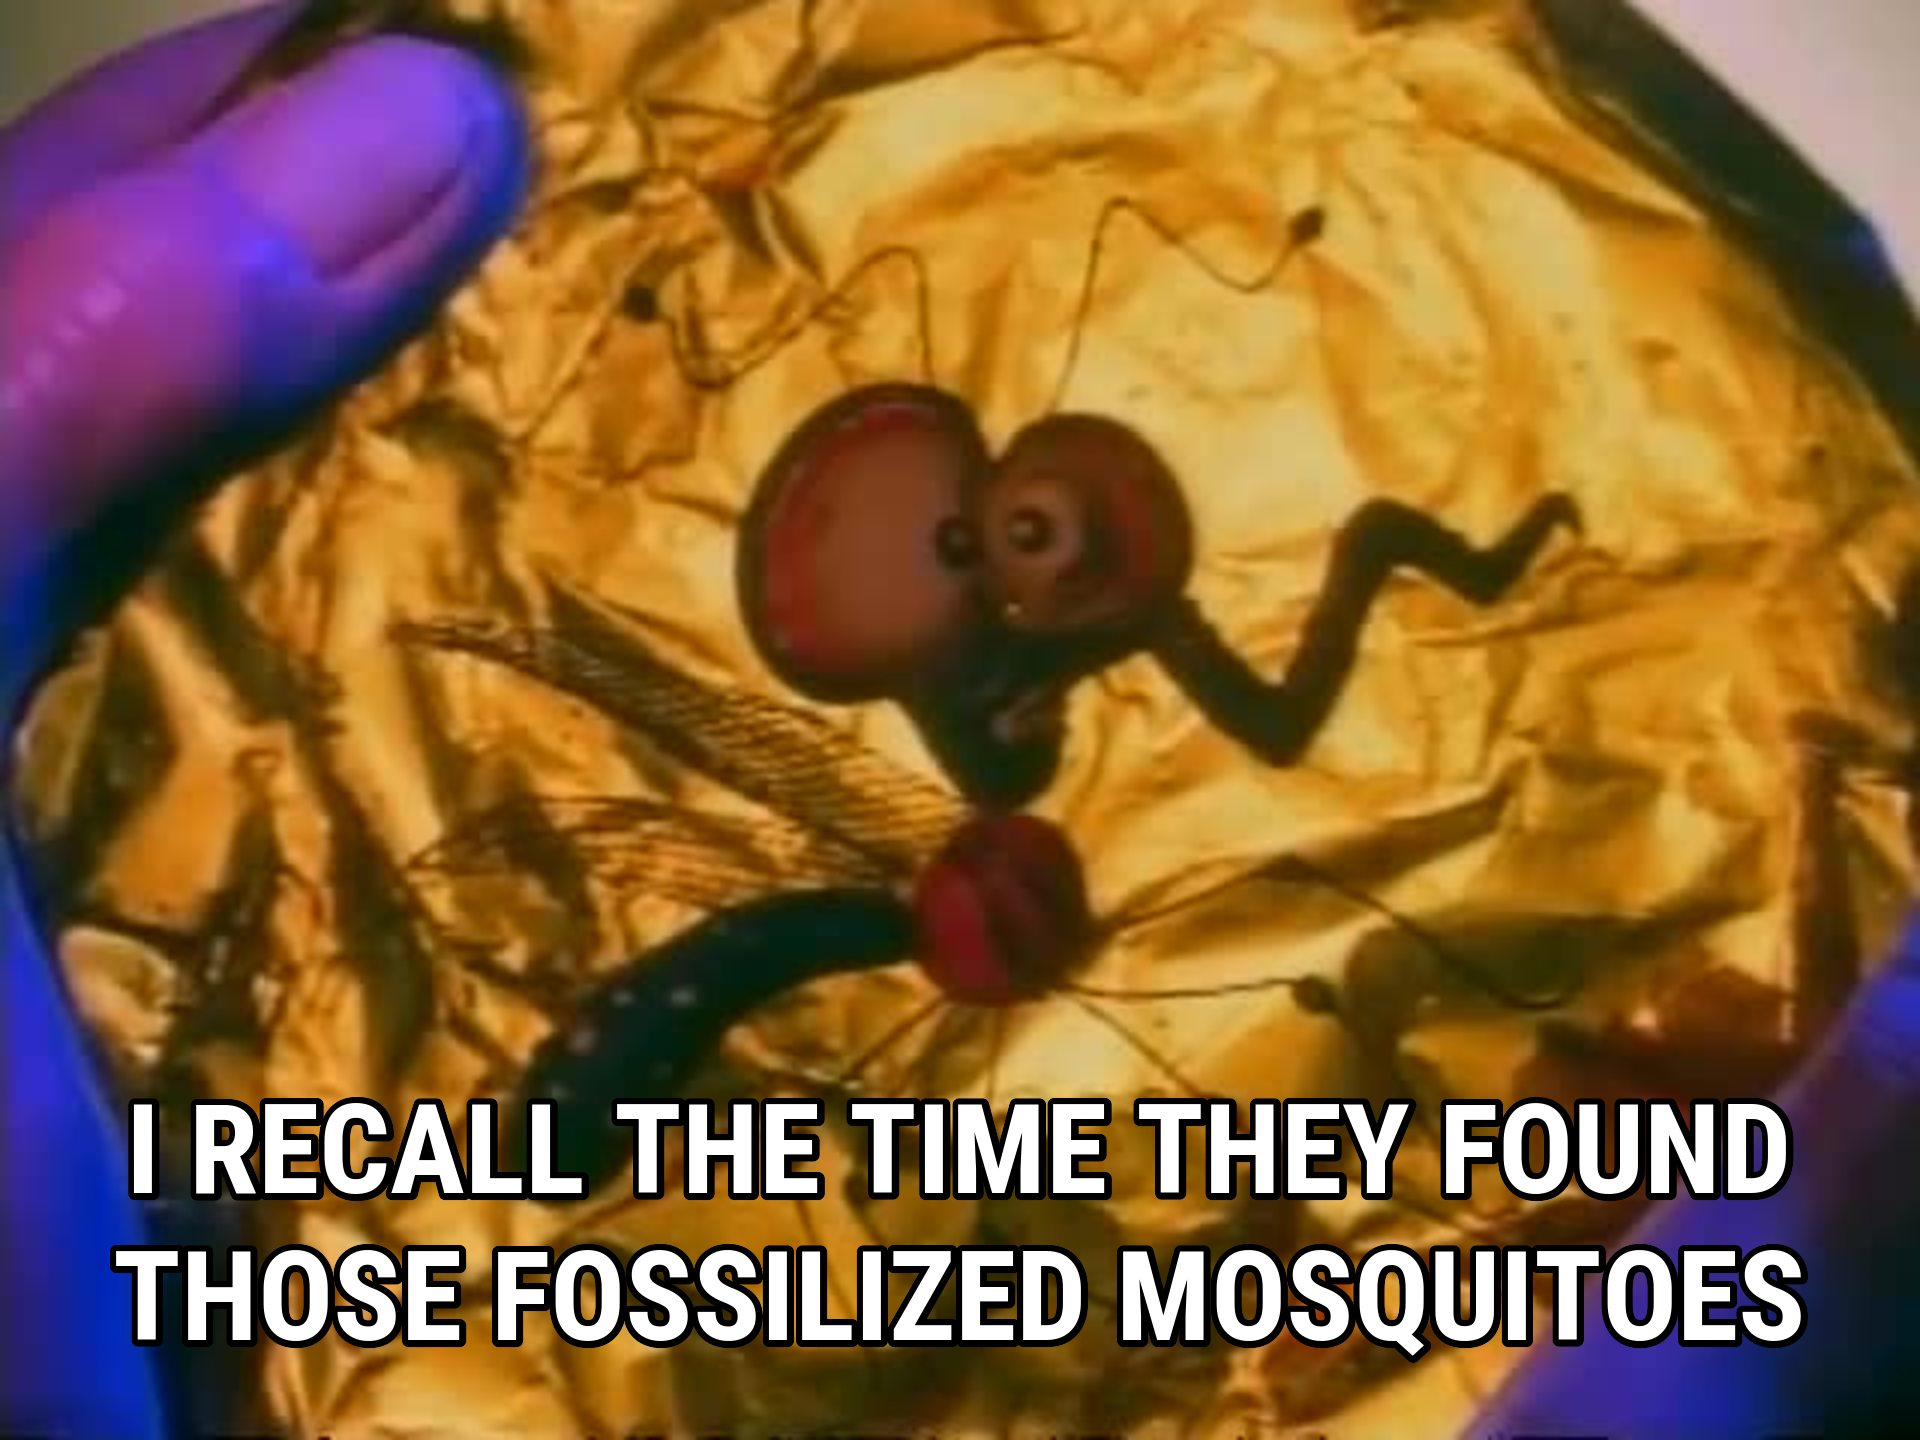 535207-weird-al-yankovic-i-recall-the-time-they-found-those-fossilized-mosquitoes.jpg